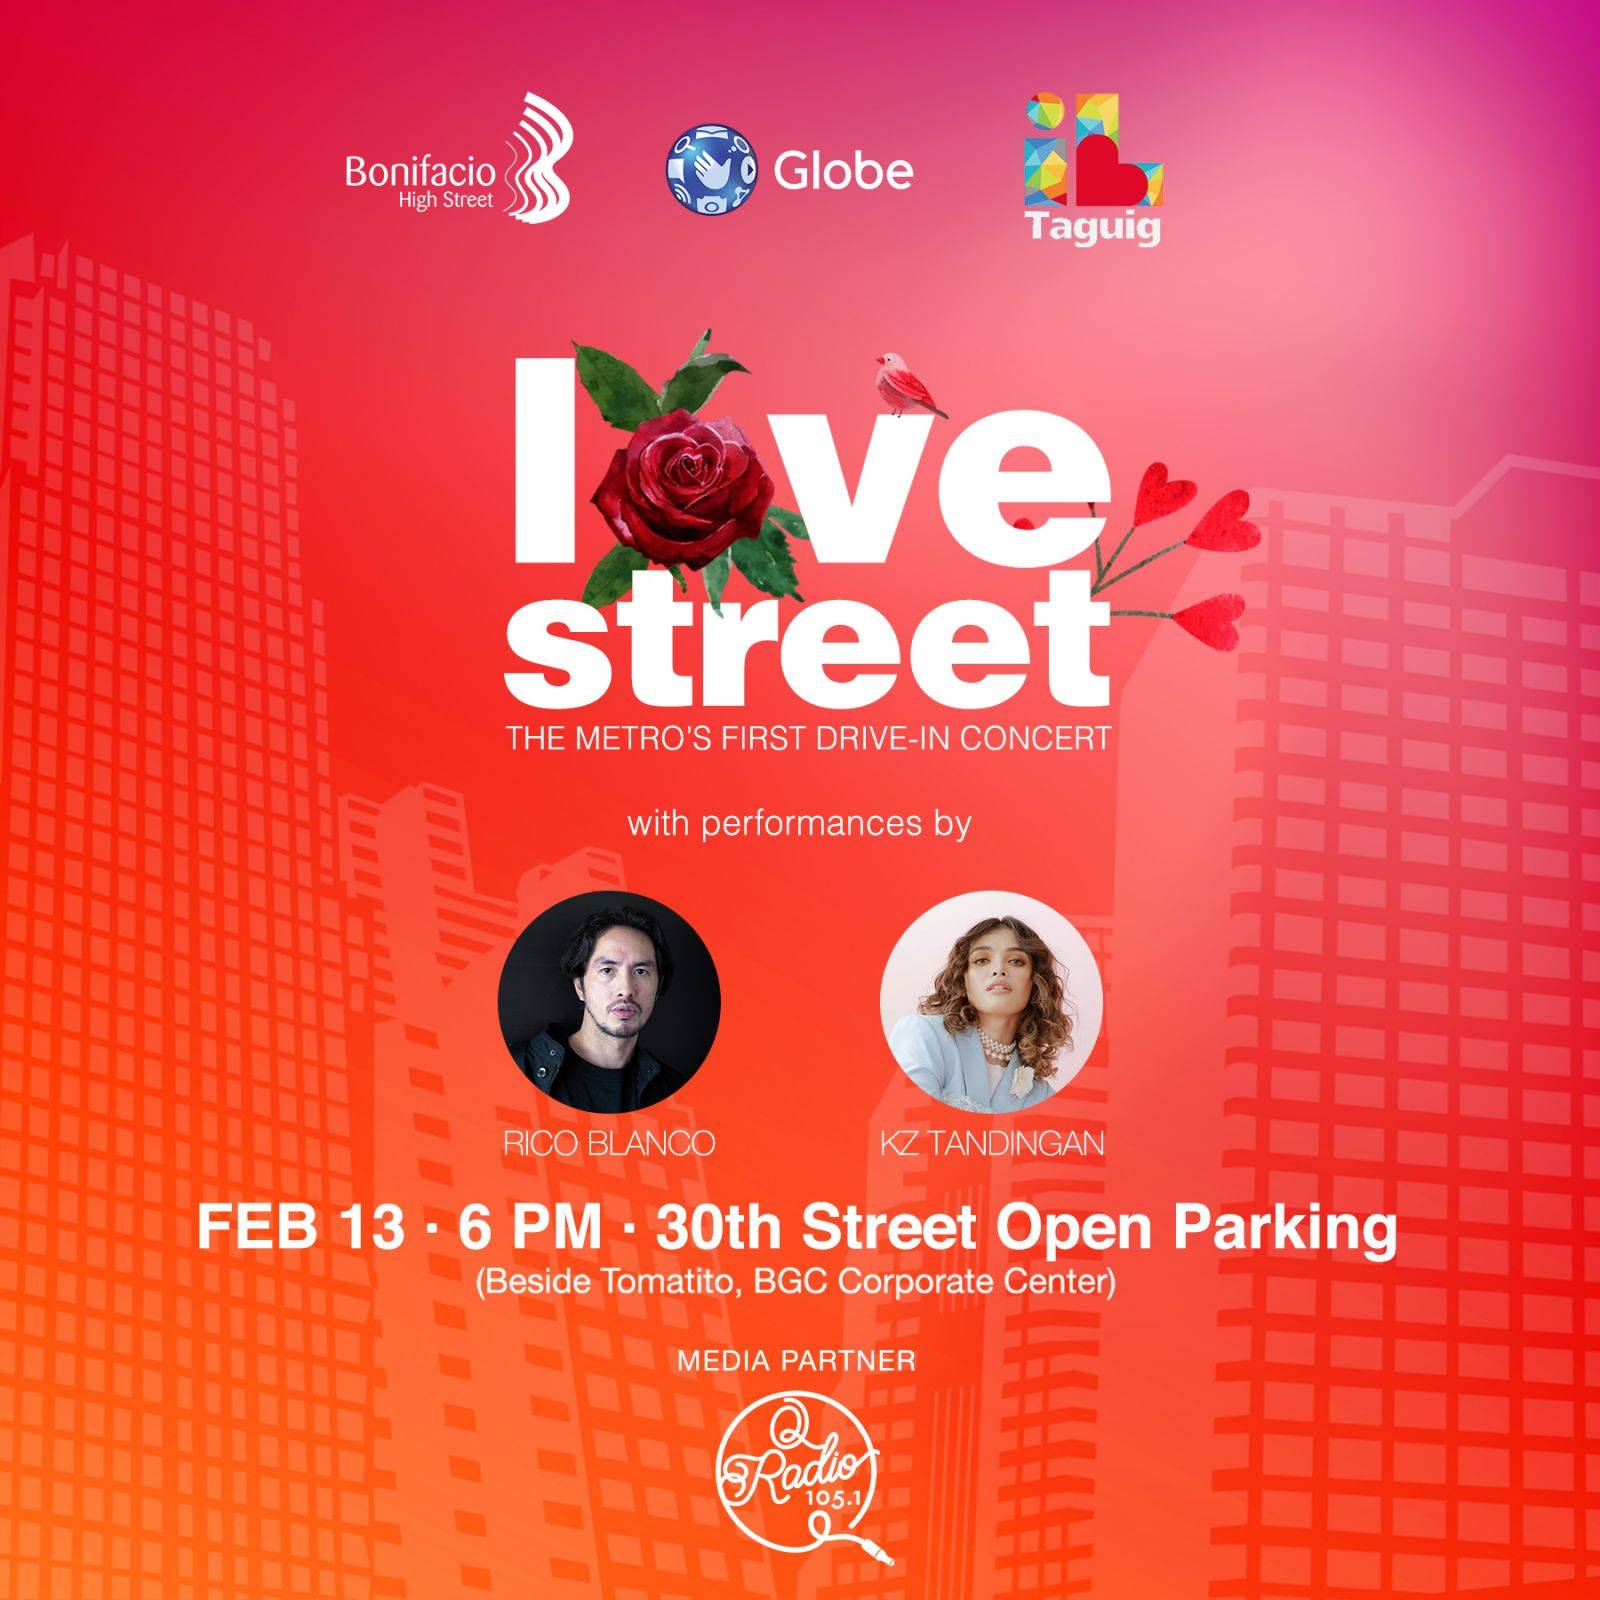 BGC celebrates Love in All its Forms this Valentine's with the first-ever Drive-in Concert in the Metro